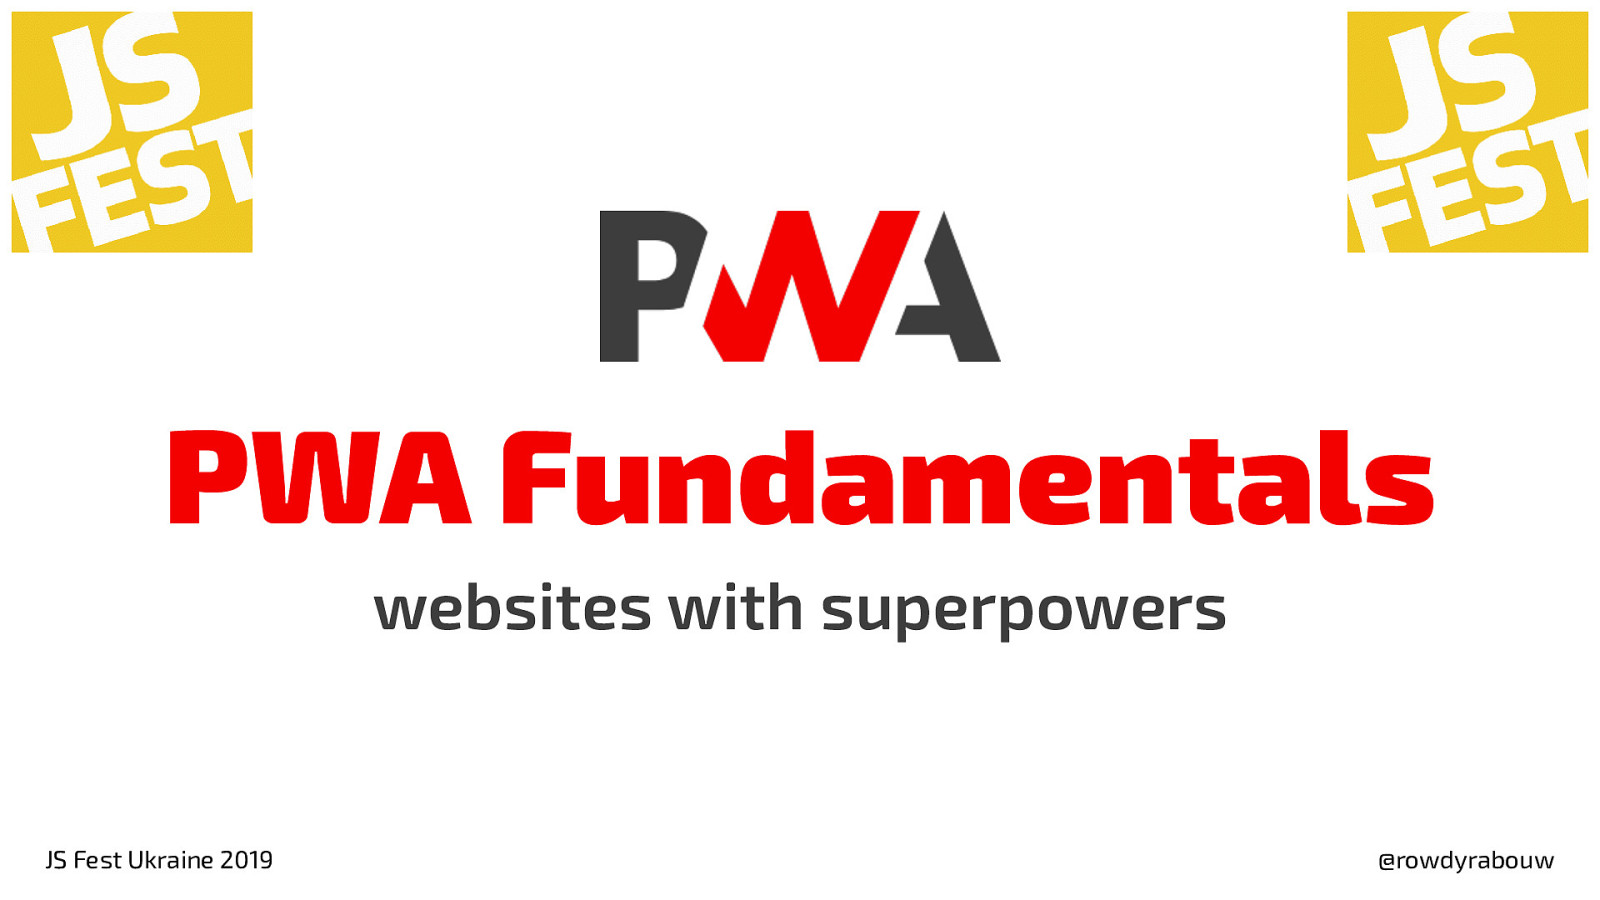 PWA Fundamentals: websites with superpowers